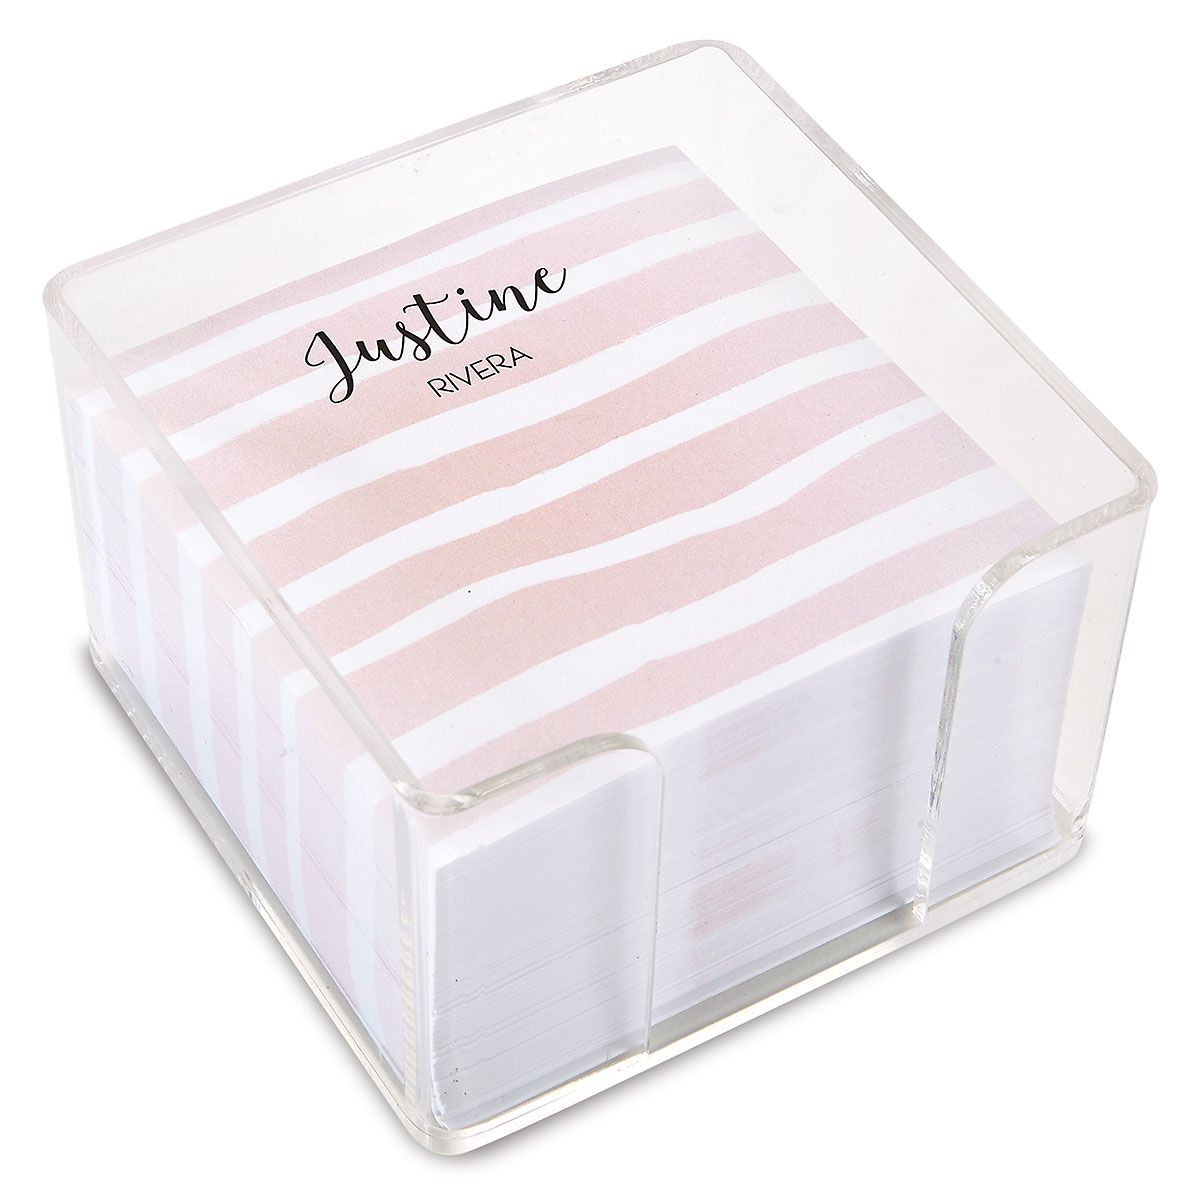 Island Stripes Personalized Note Sheets in a Cube (4 Colors)